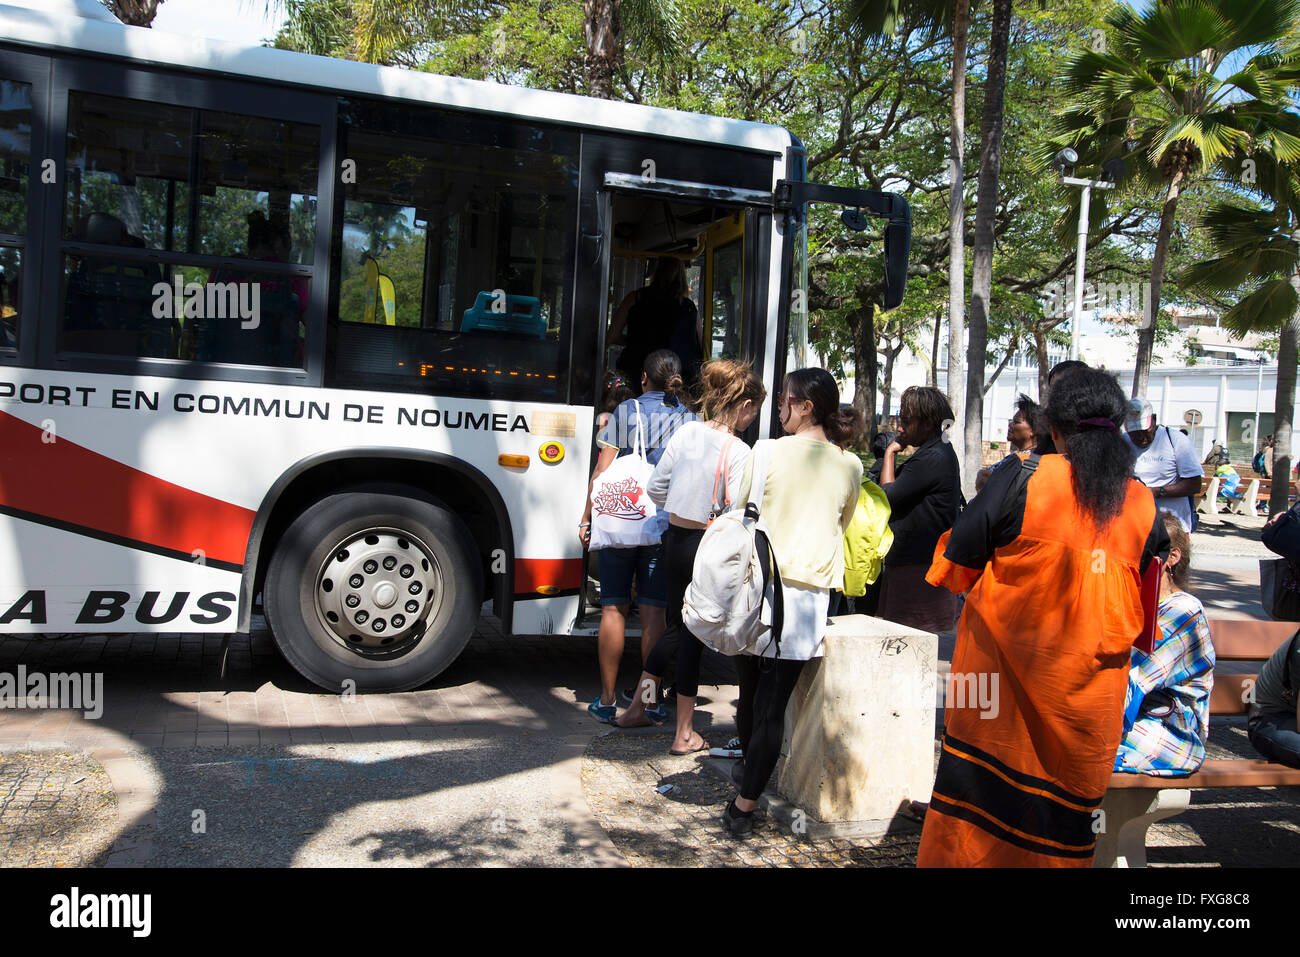 passengers queue to get on single decker bus in Noumea central square - Stock Image